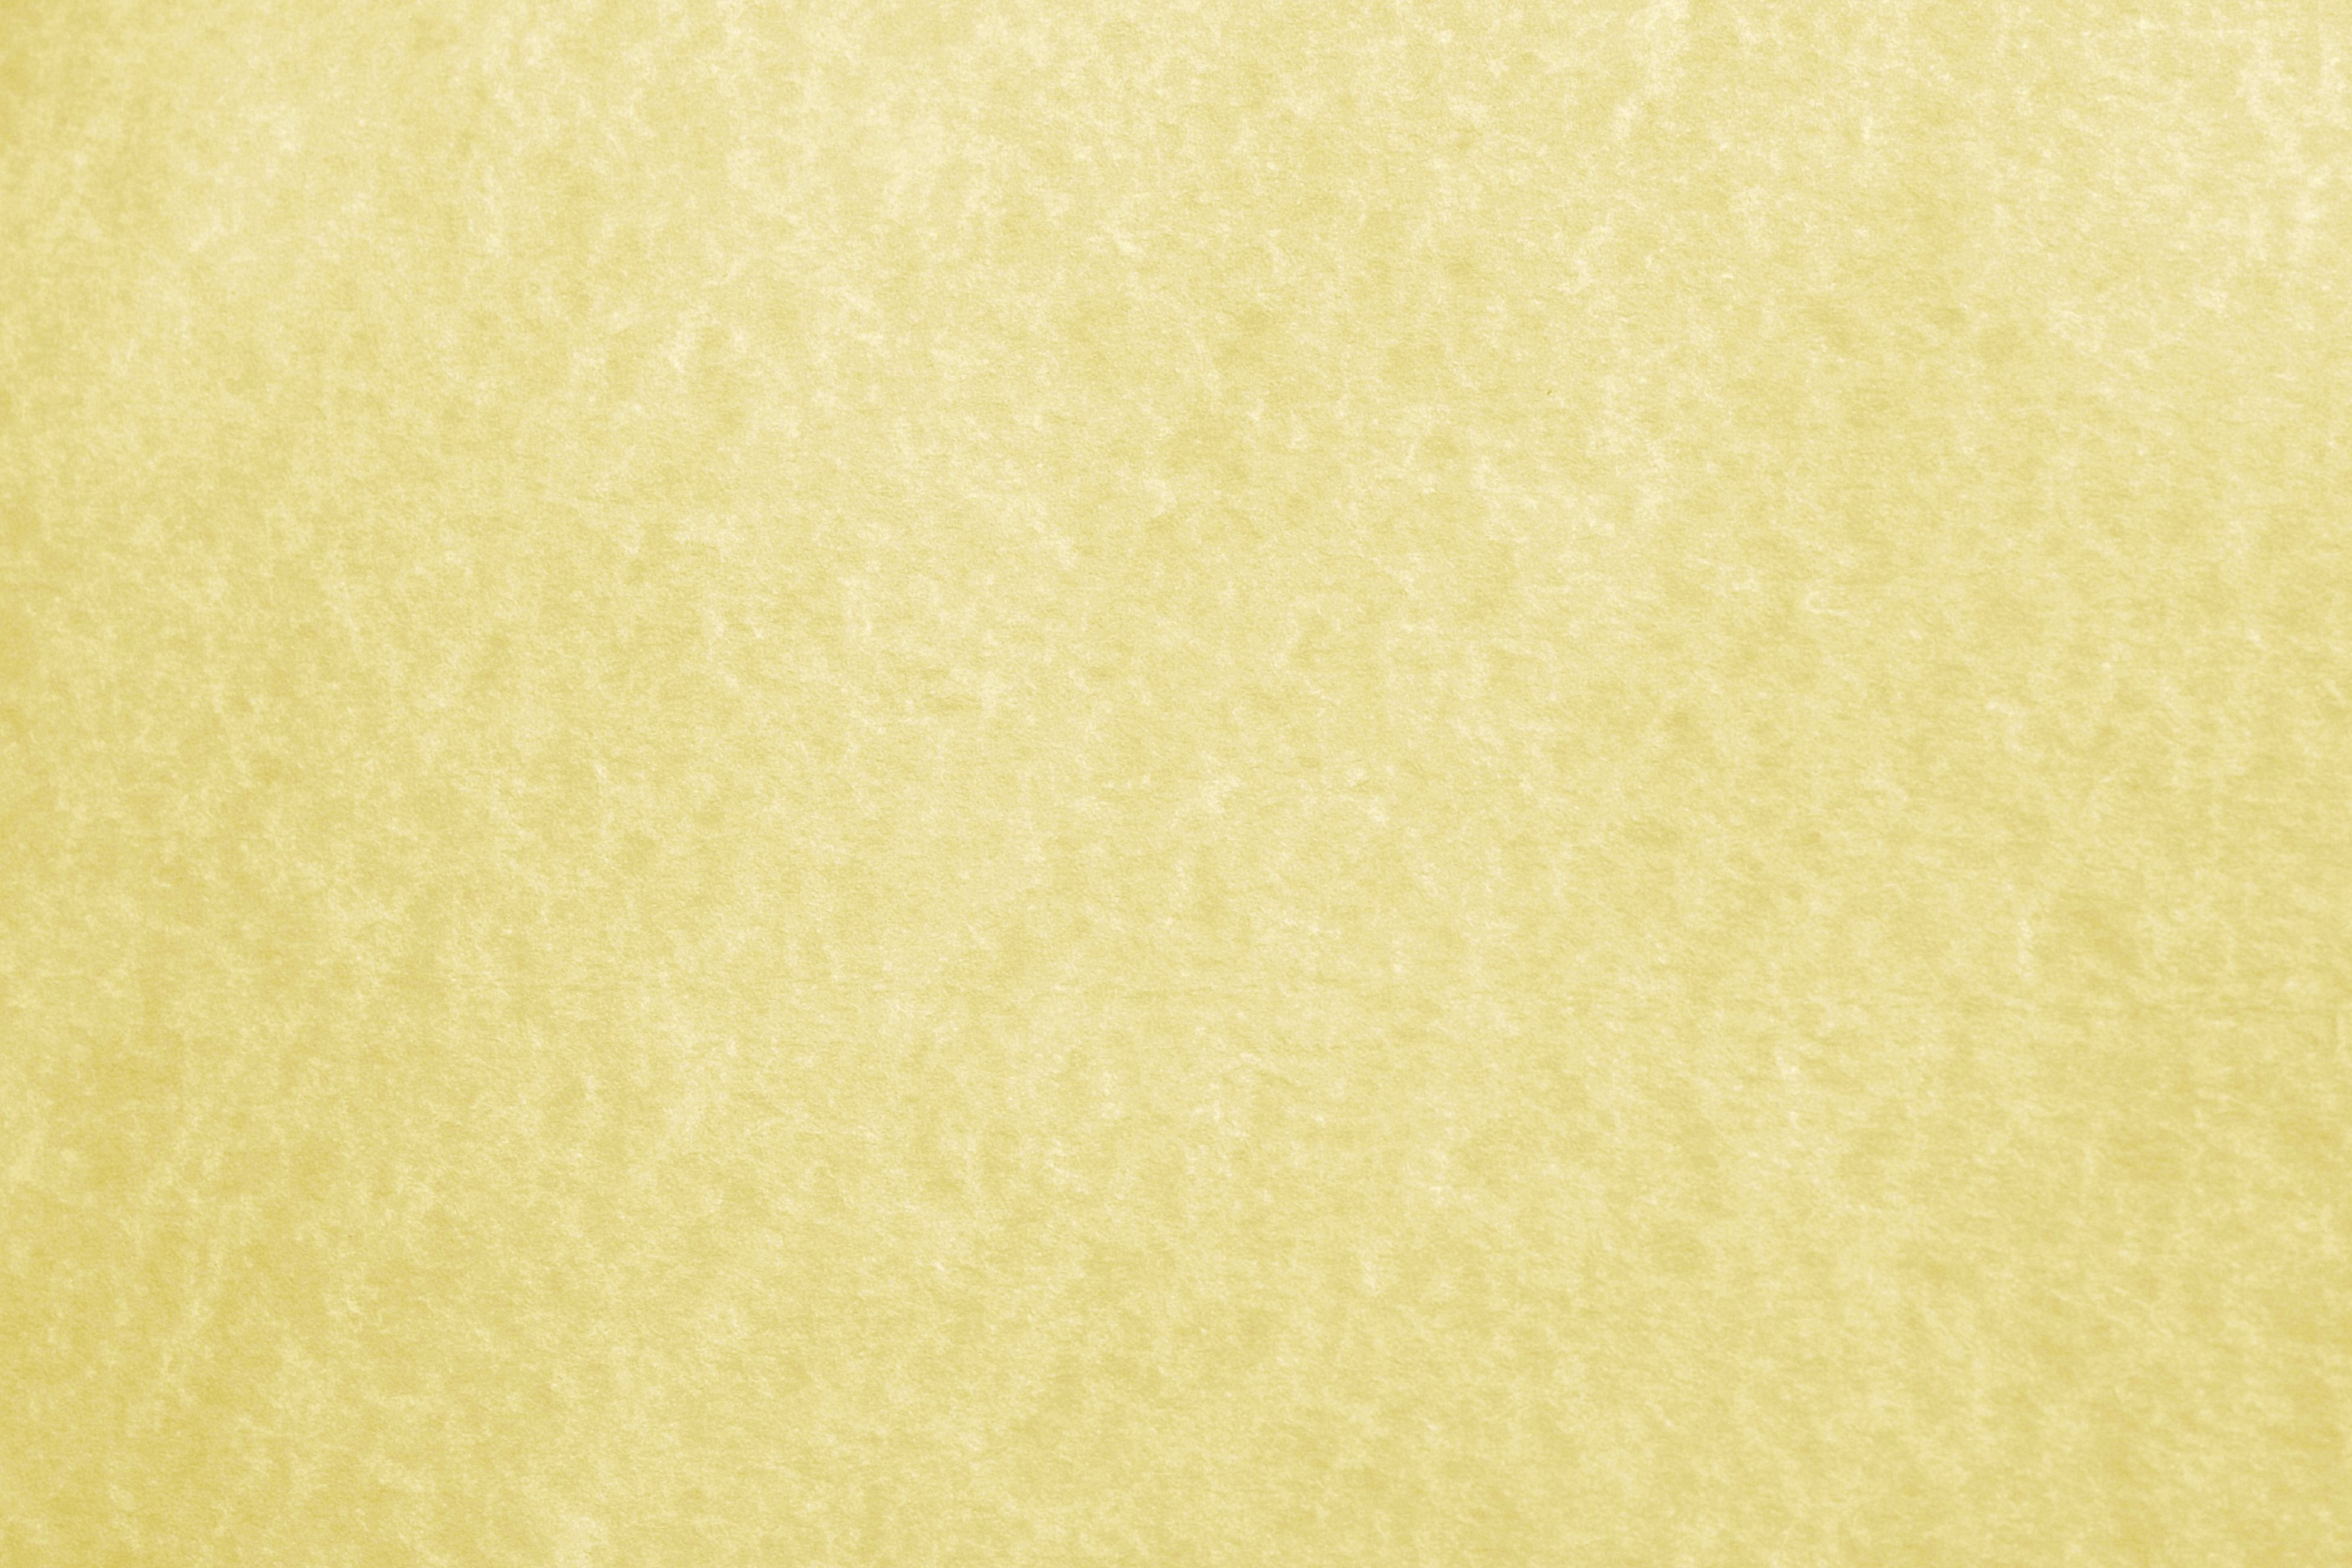 paper texture background - photo #28